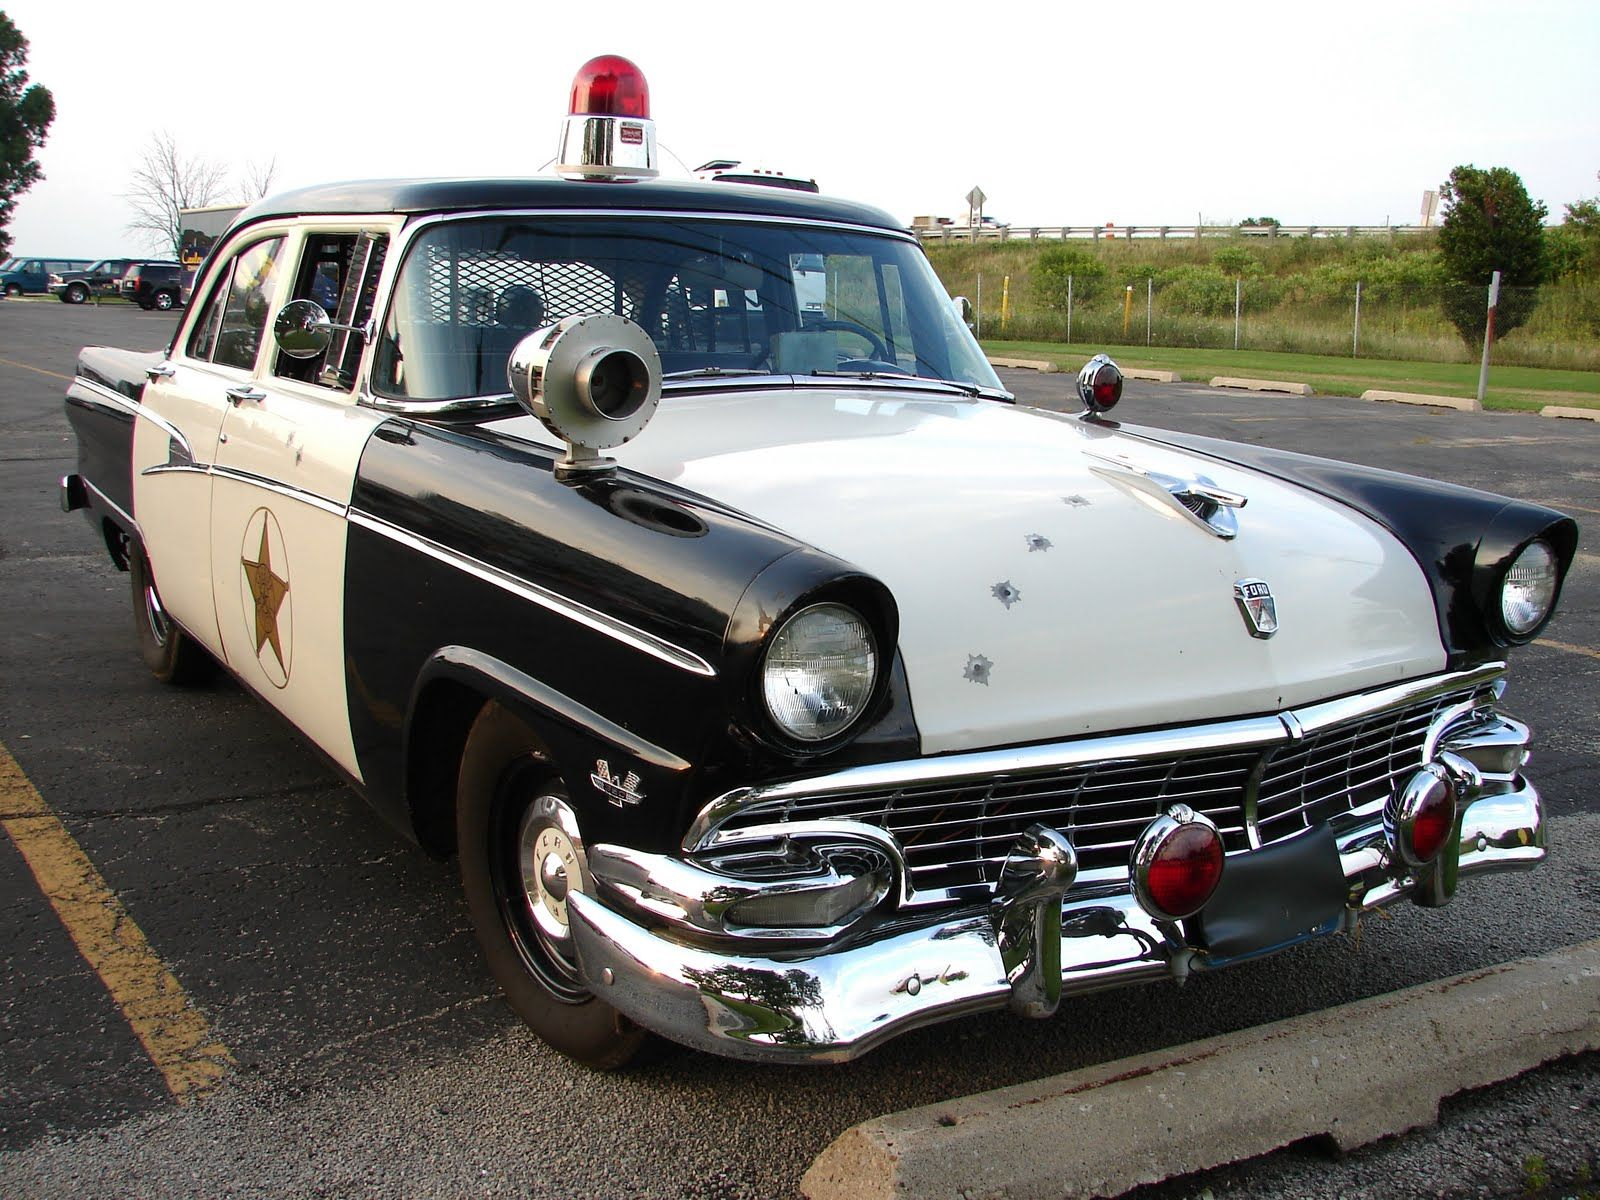 Old Police Cop Car | vintage police cars | Outstanding Officers ...